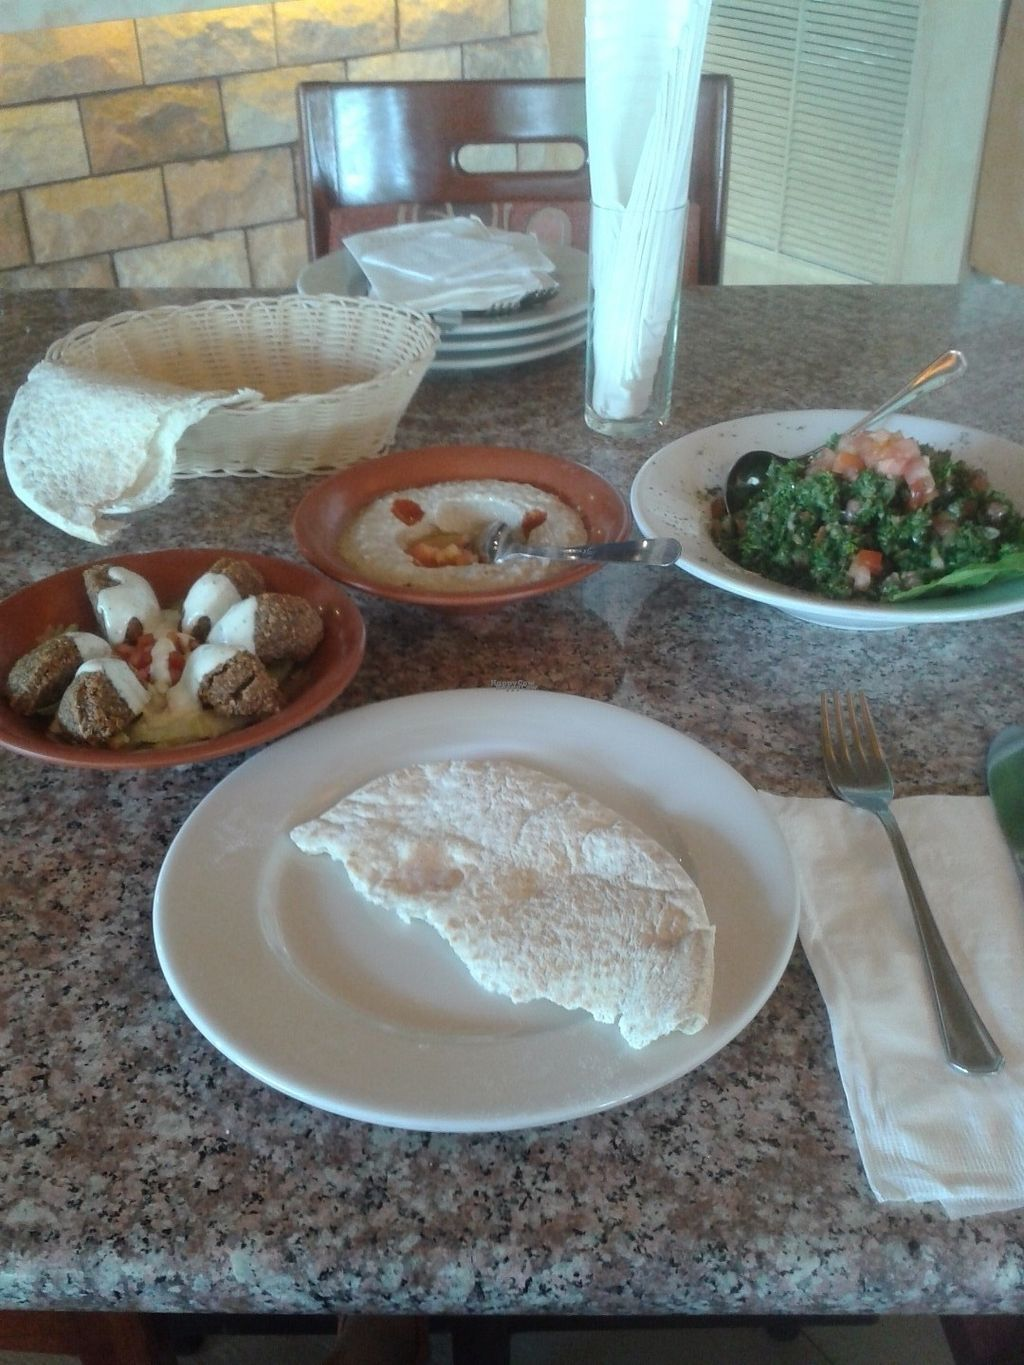 """Photo of Beirut  by <a href=""""/members/profile/Ismarix"""">Ismarix</a> <br/>tabulleh, hummus, kibbeh and pita bread at their Playa Blanca location <br/> October 17, 2016  - <a href='/contact/abuse/image/44419/182594'>Report</a>"""